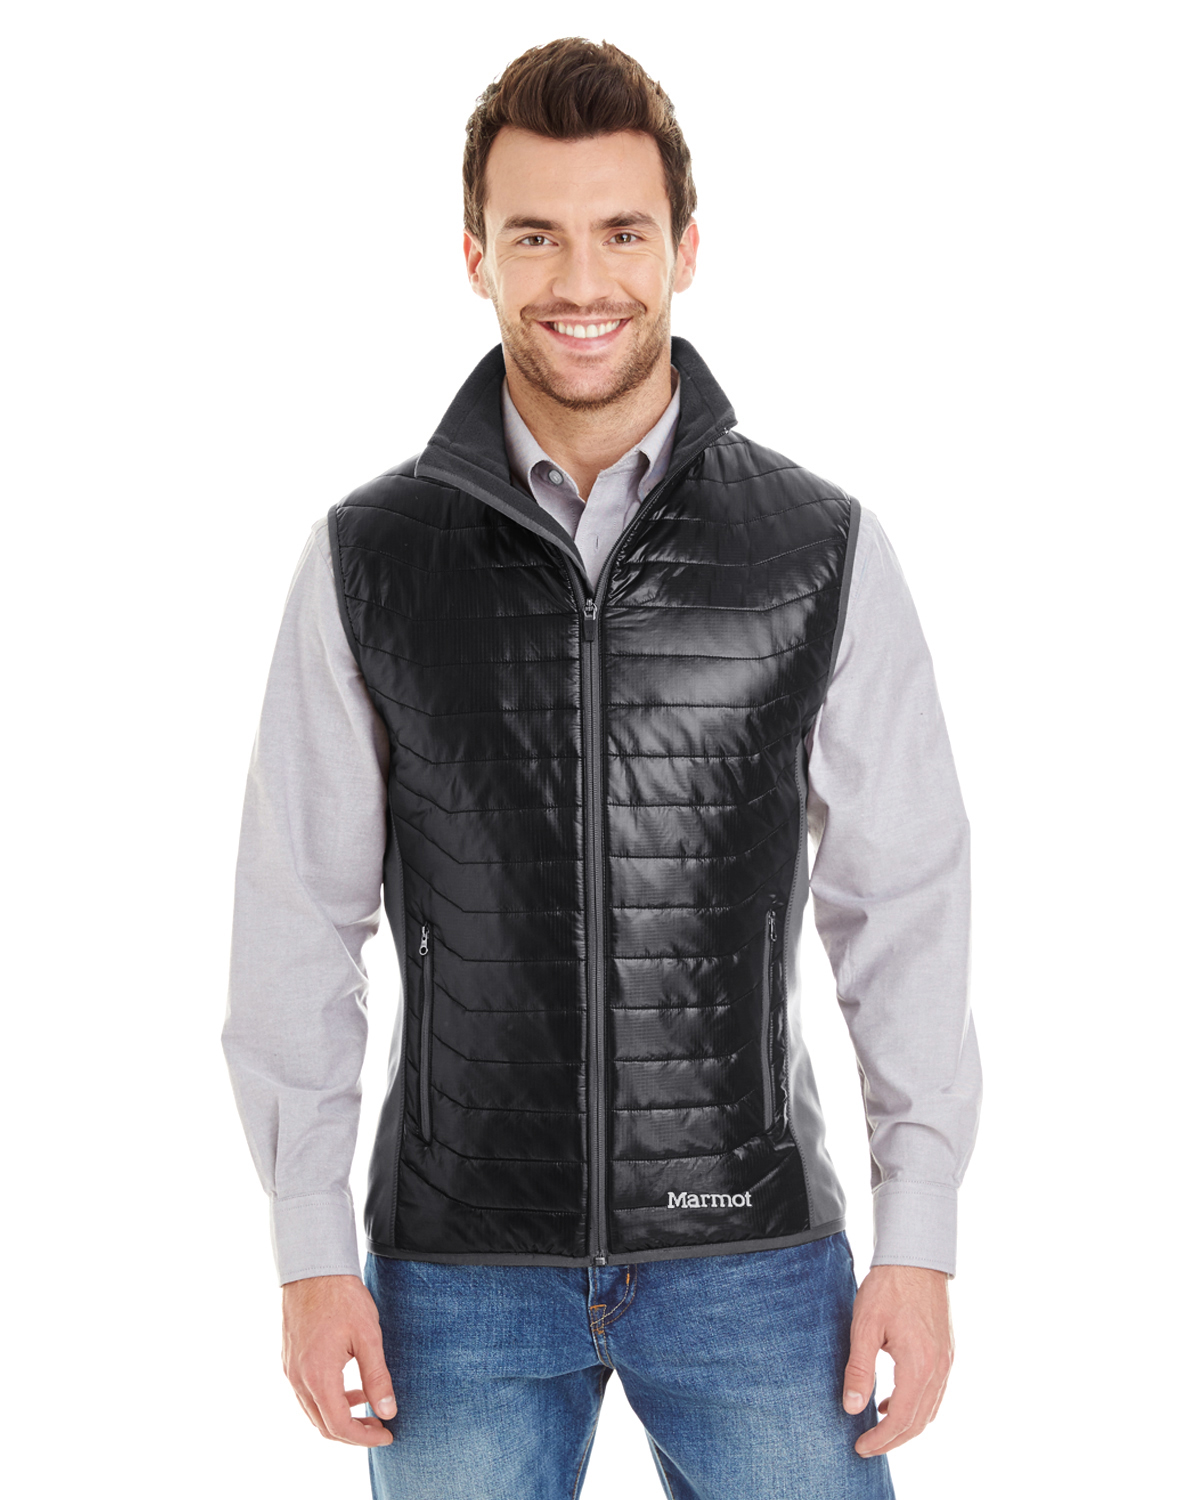 Marmot - 900288, Men's Variant Vest - Logo Masters International